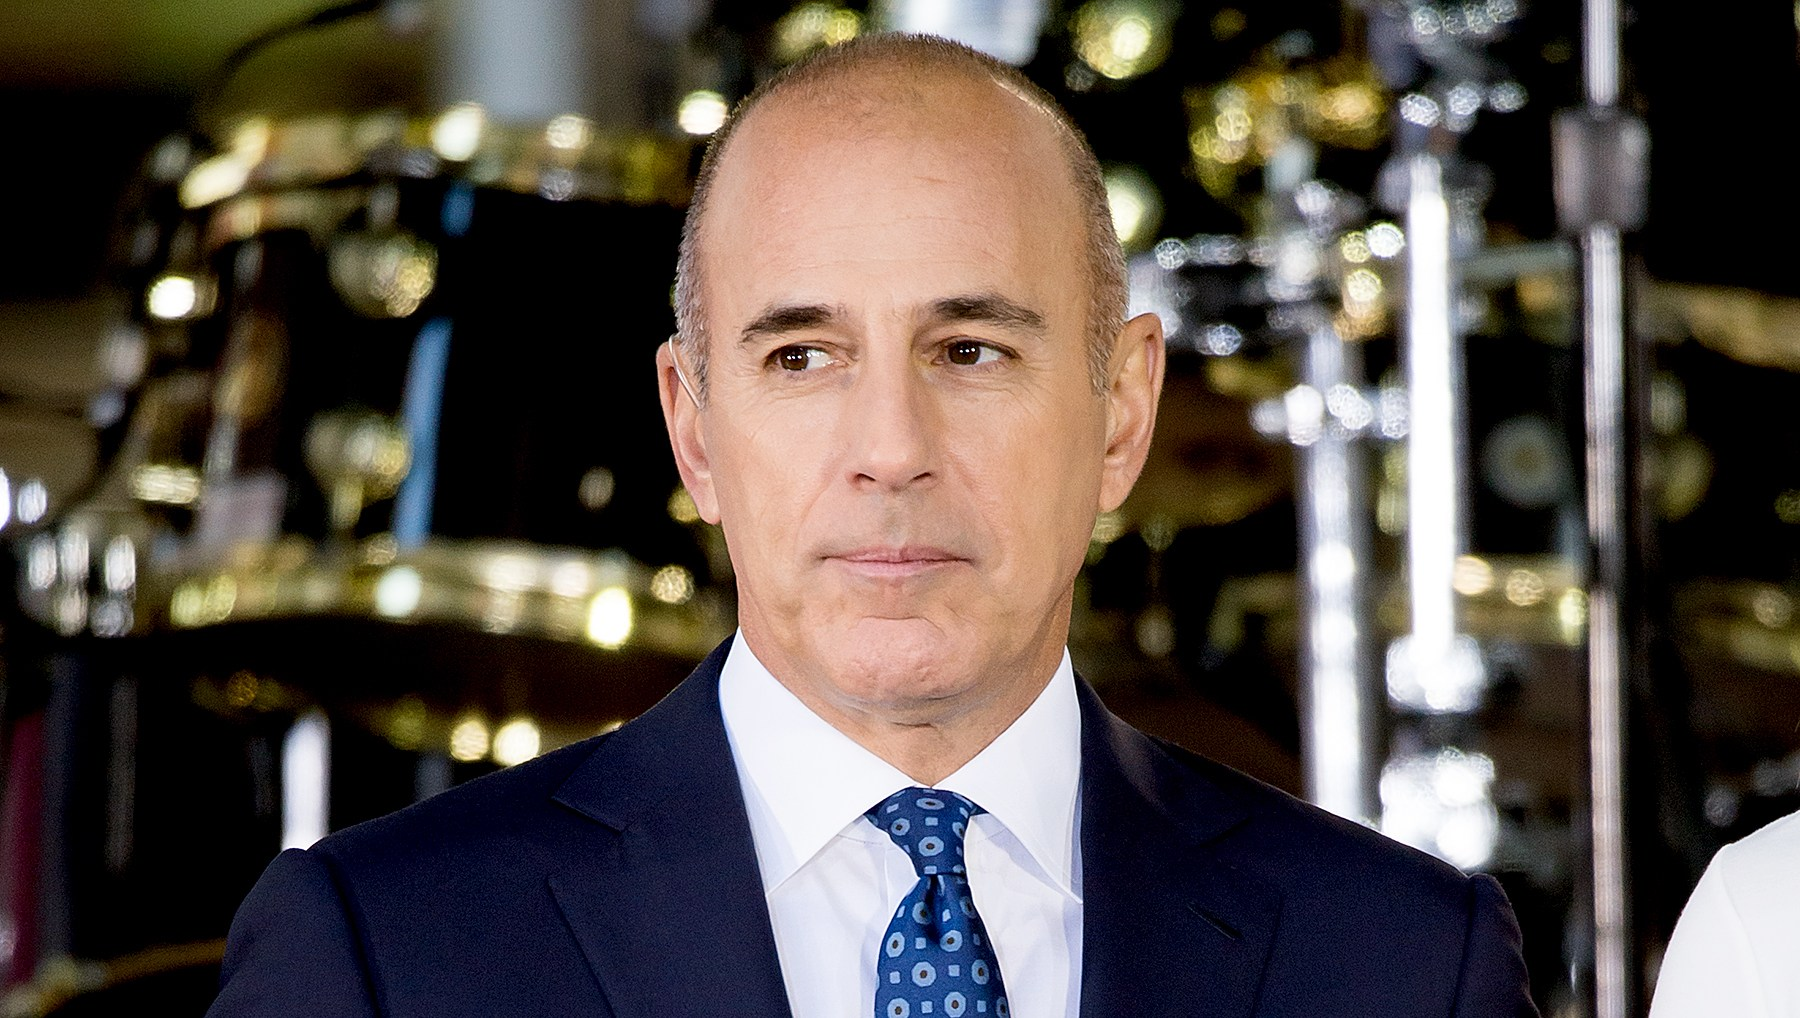 Matt-Lauer-affair